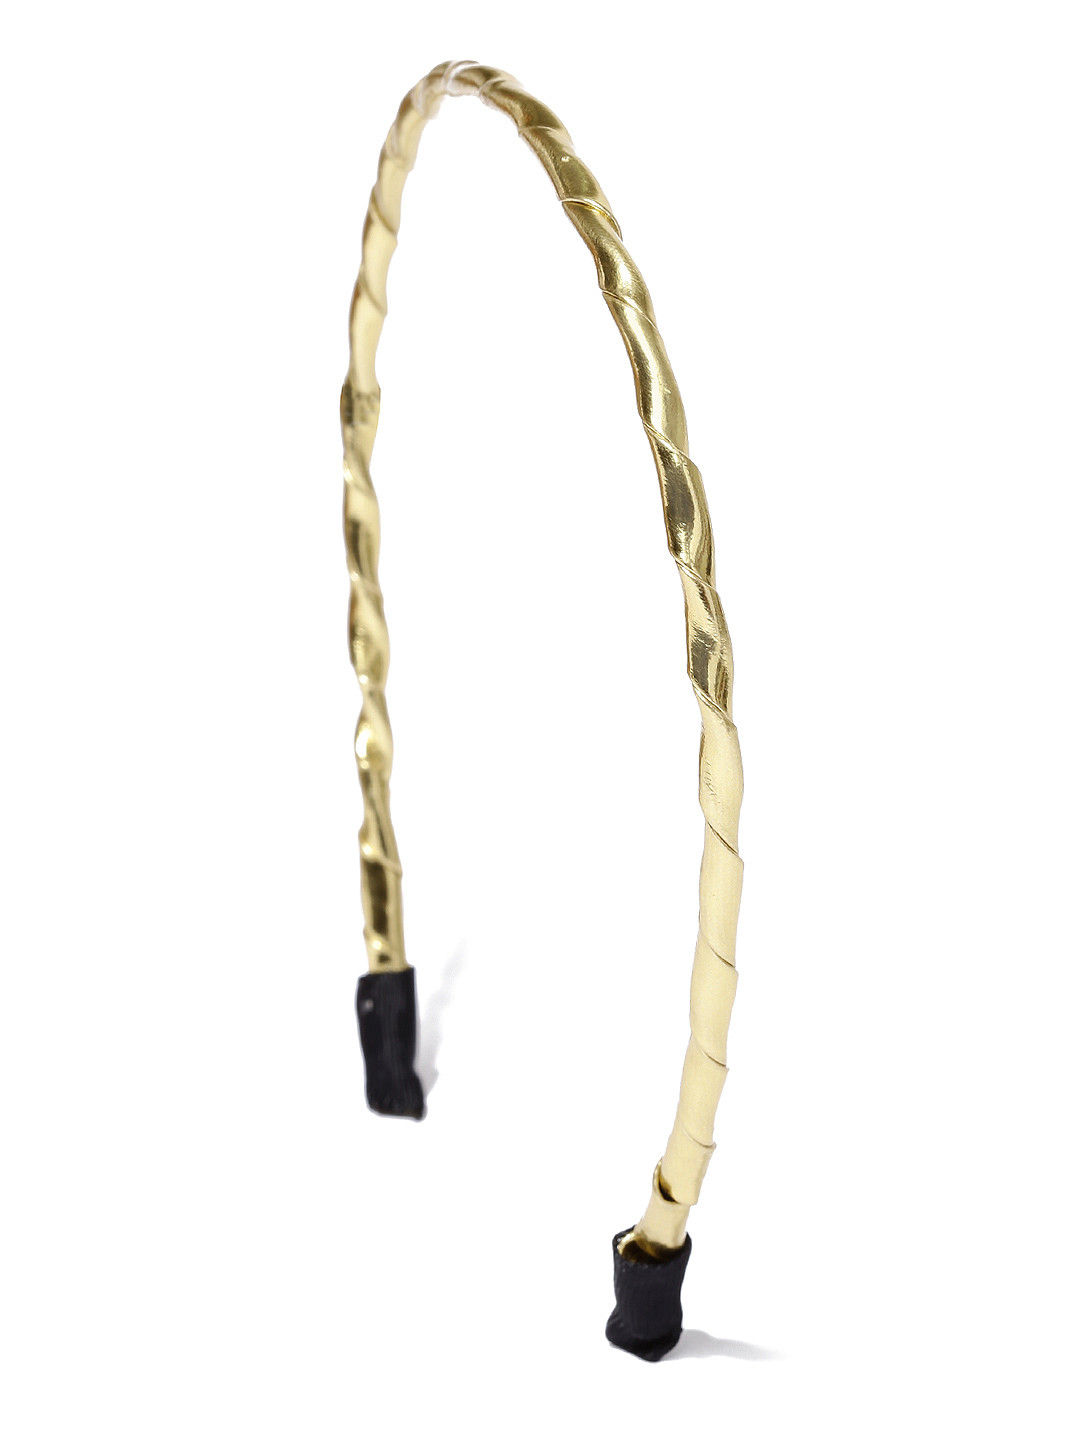 Toniq Gold Braided Basic Hair Band